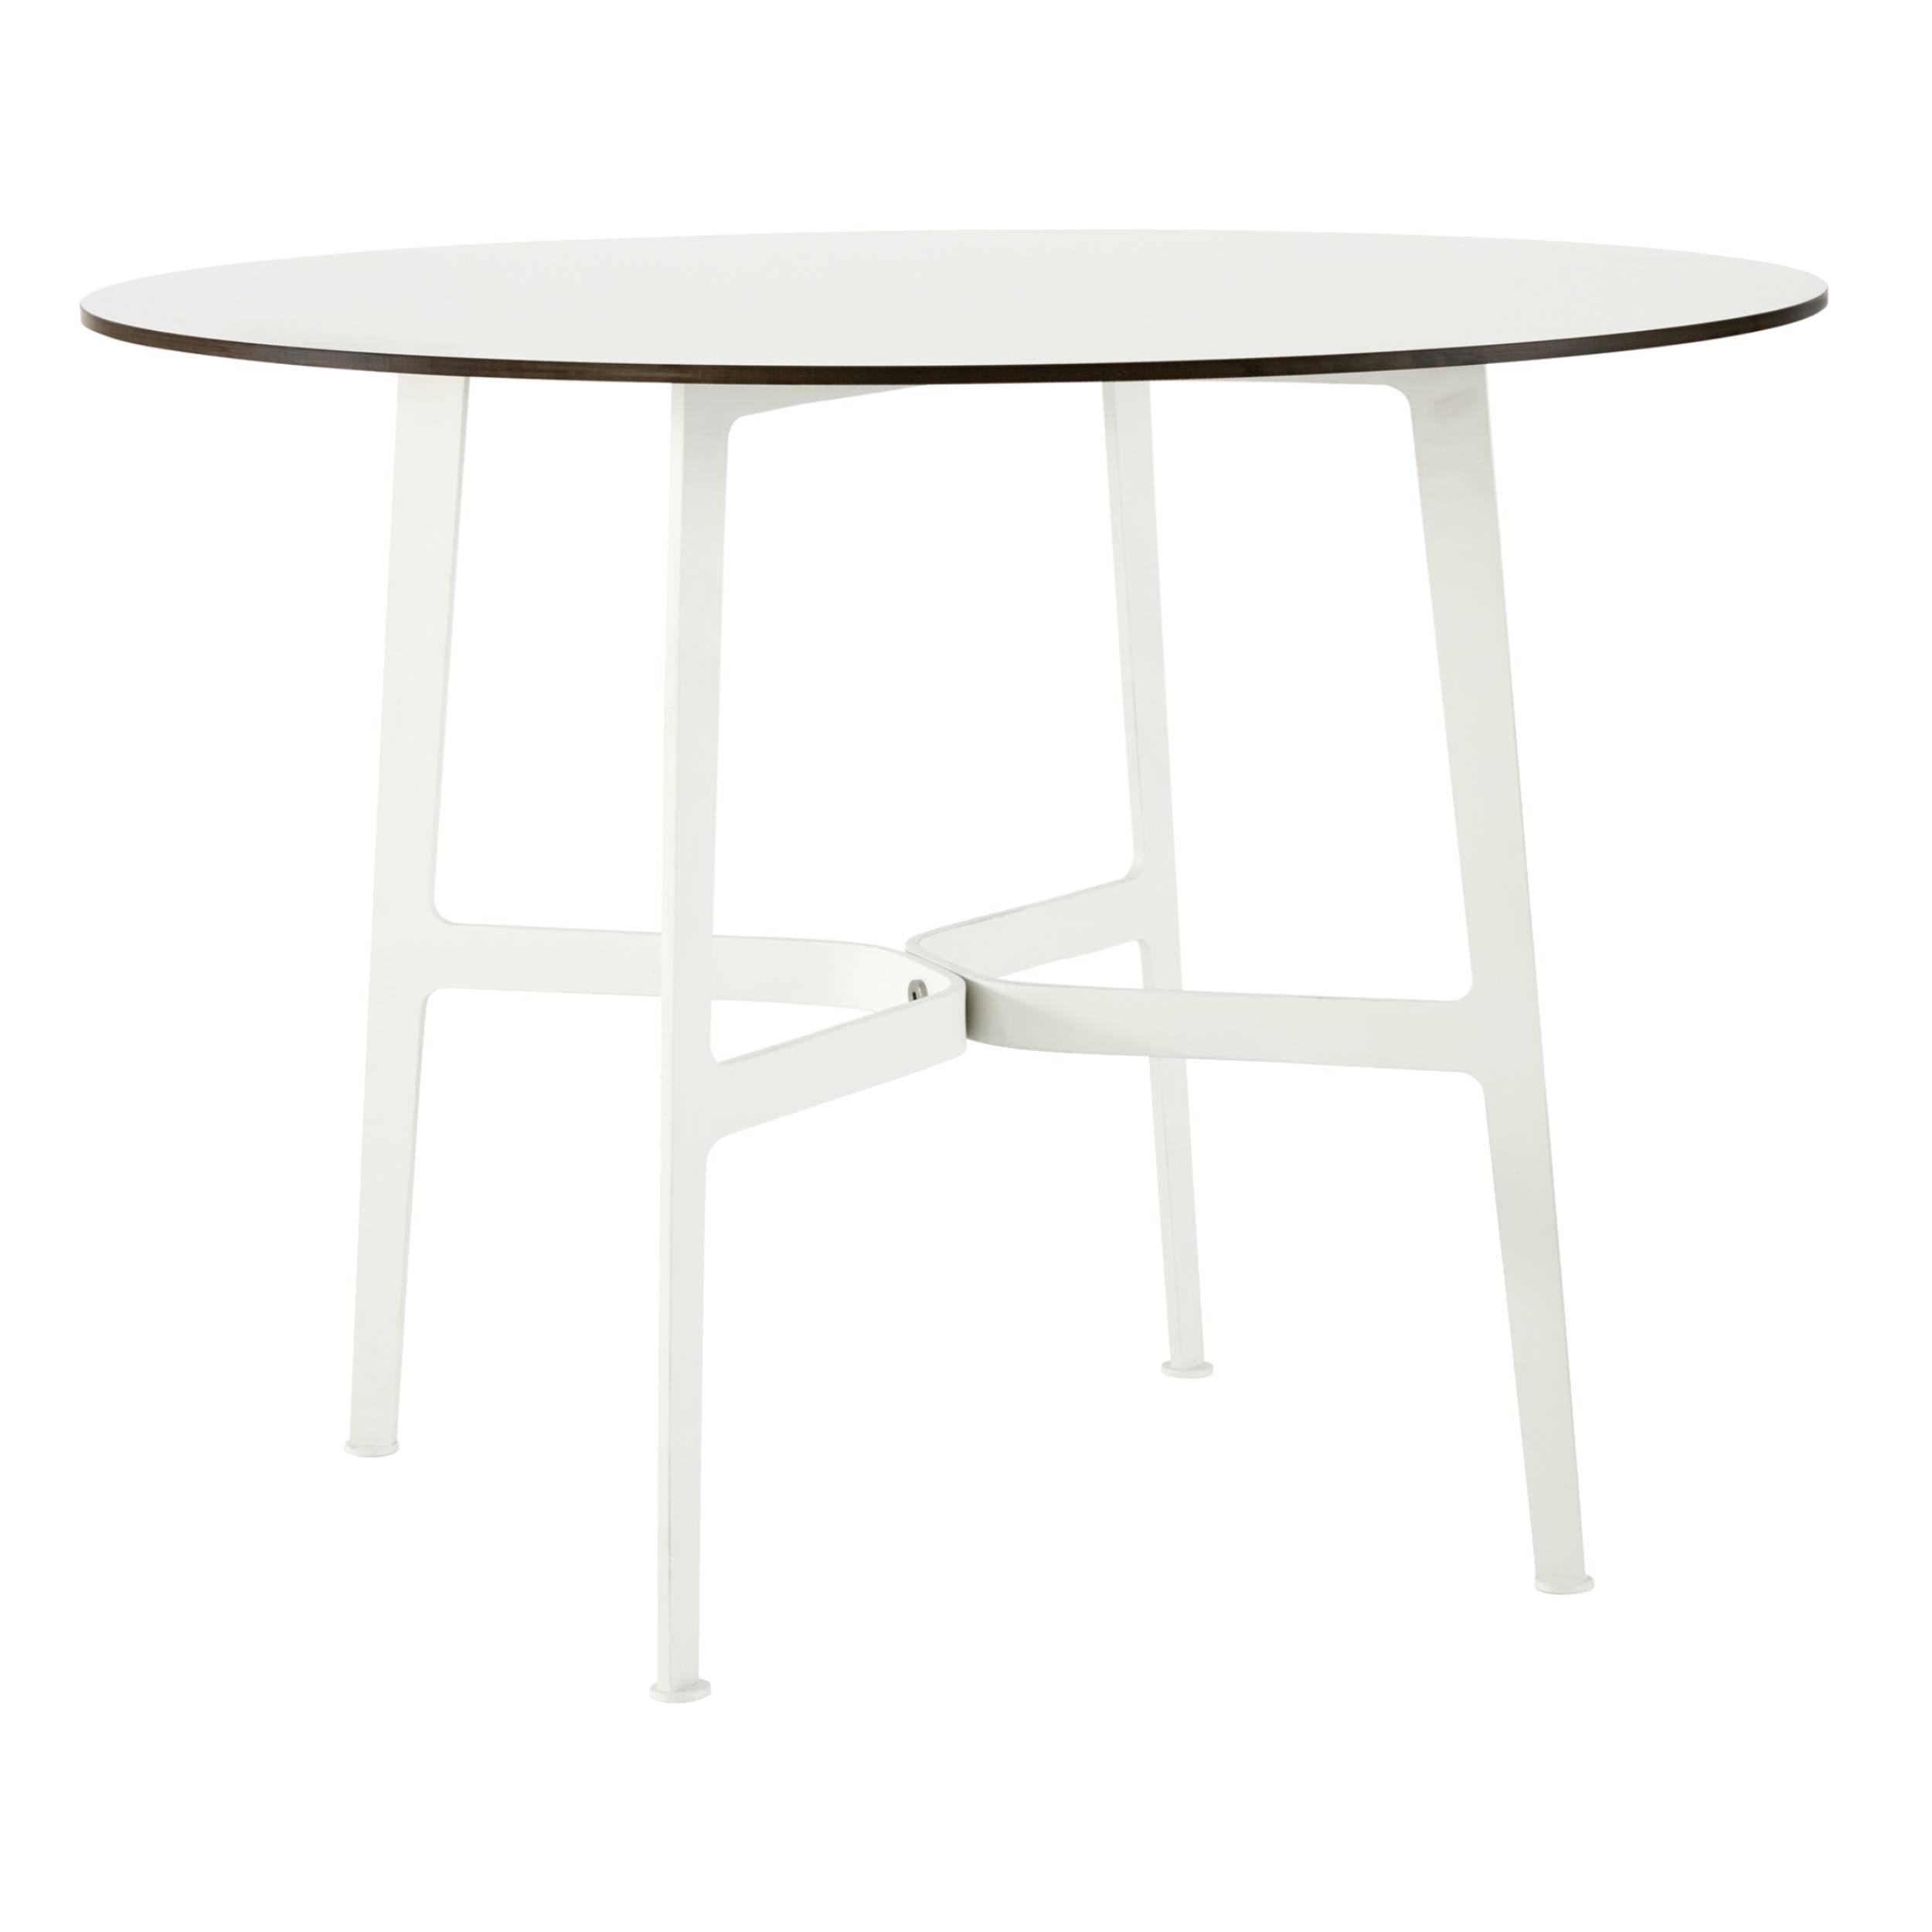 Eileen Circular Dining Table: Large + White + White Laminate